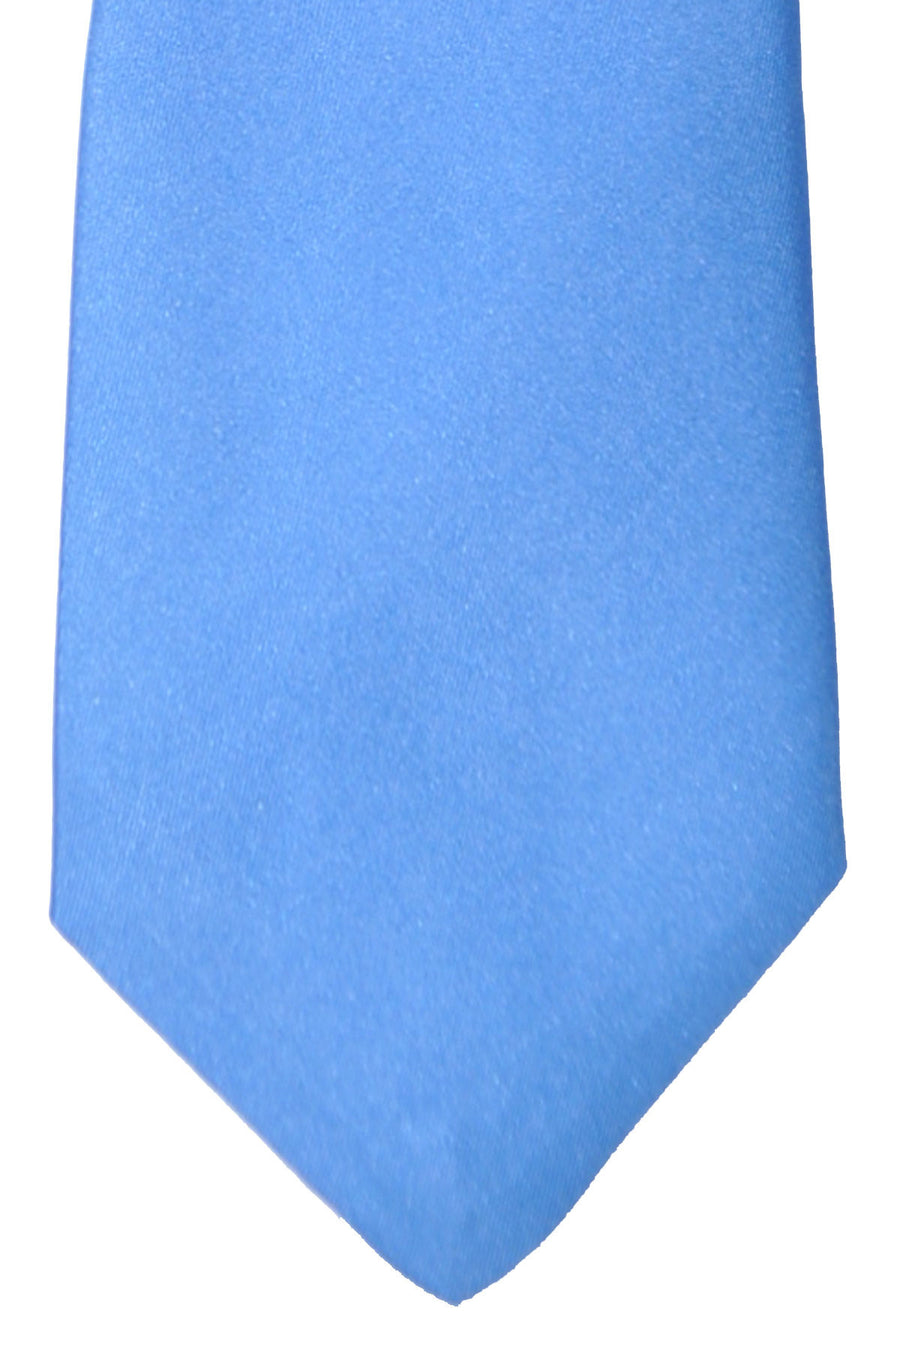 Gene Meyer Tie Blue Geometric Design